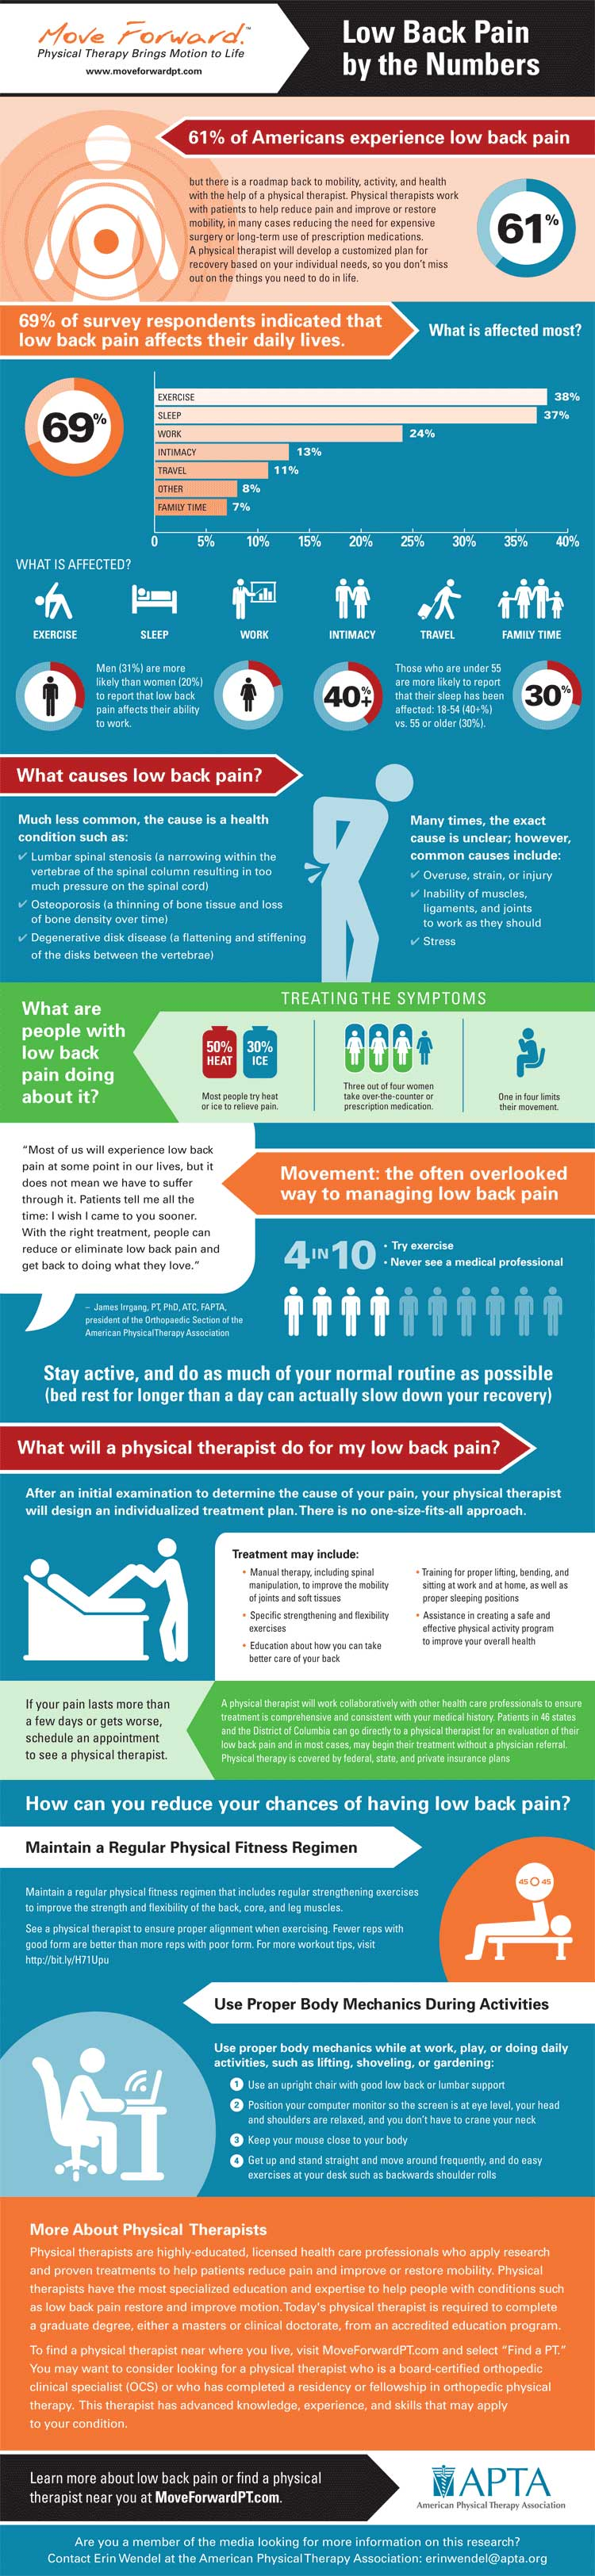 Low Back Pain - By The Numbers